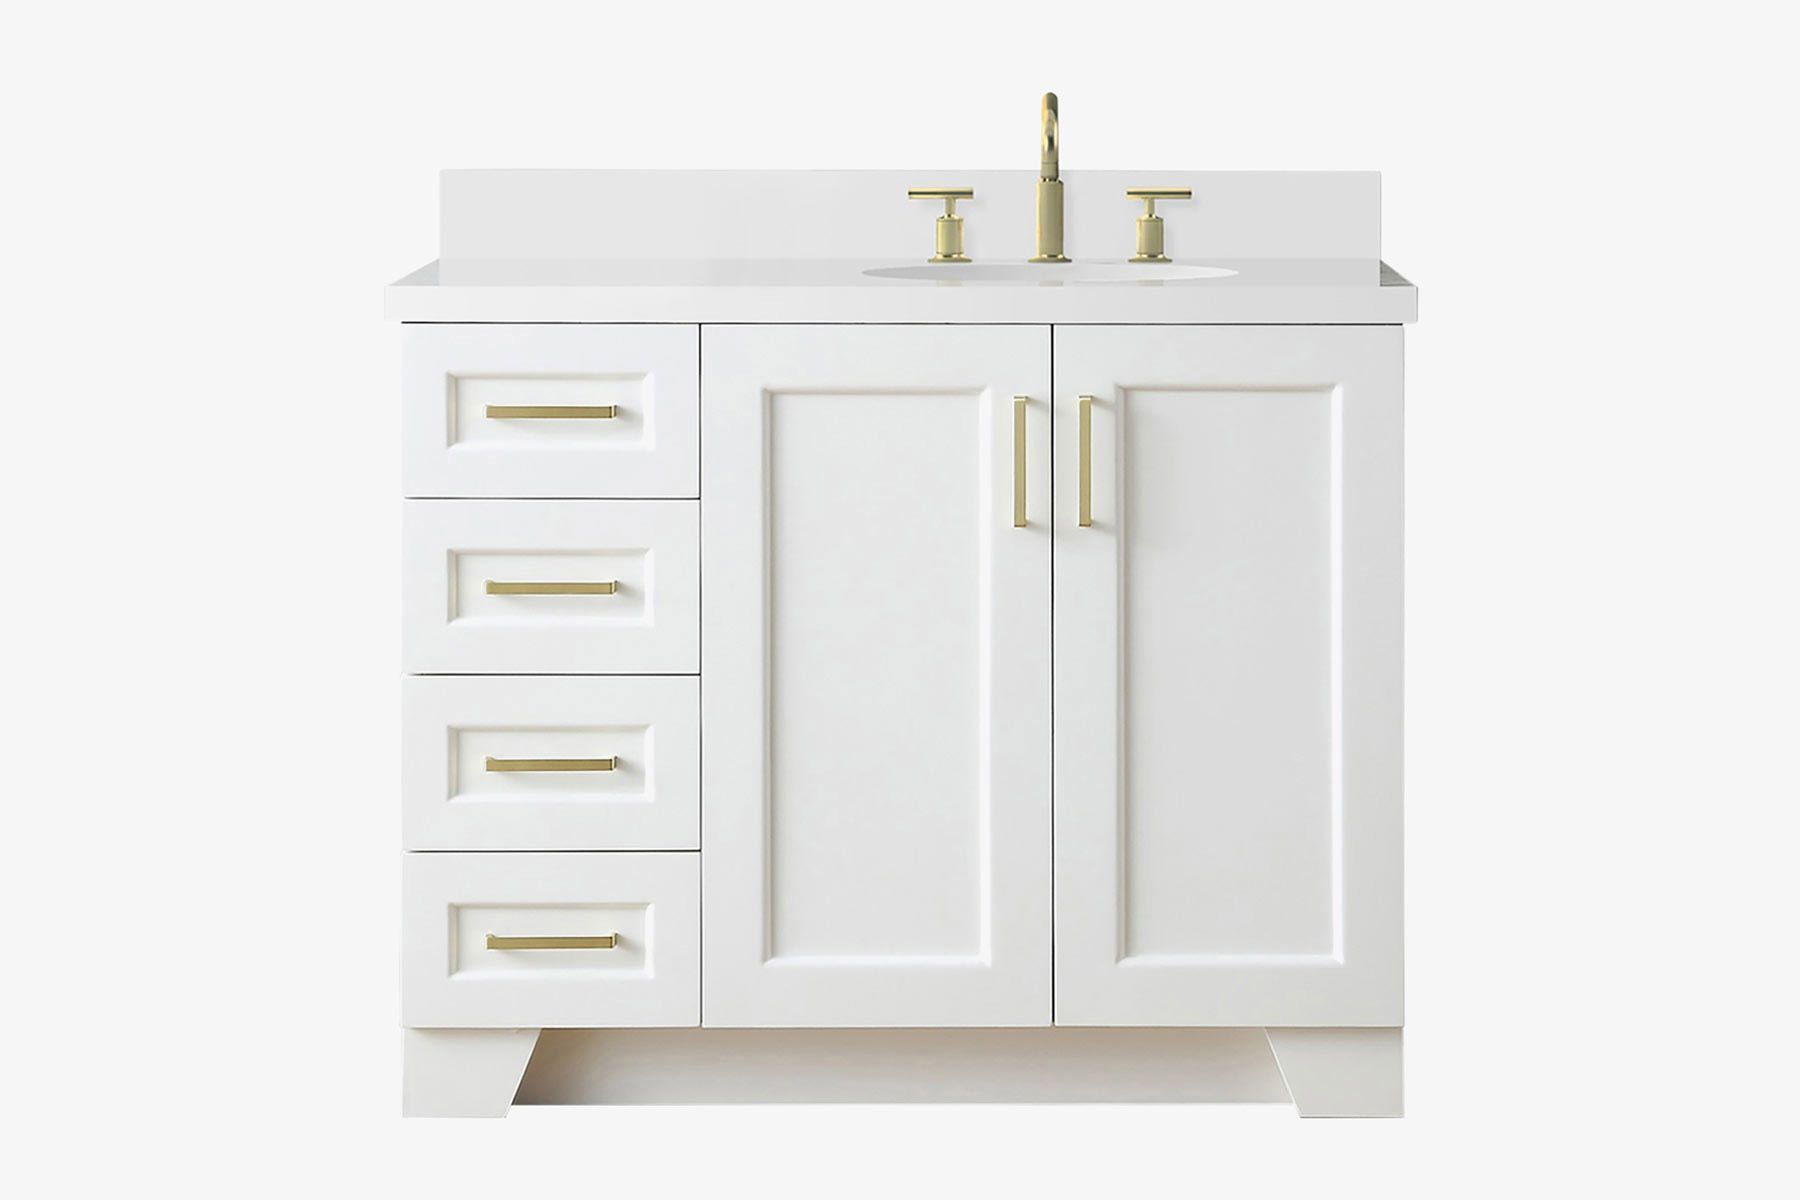 ariel taylor 43 in right offset single oval sink vanity in white